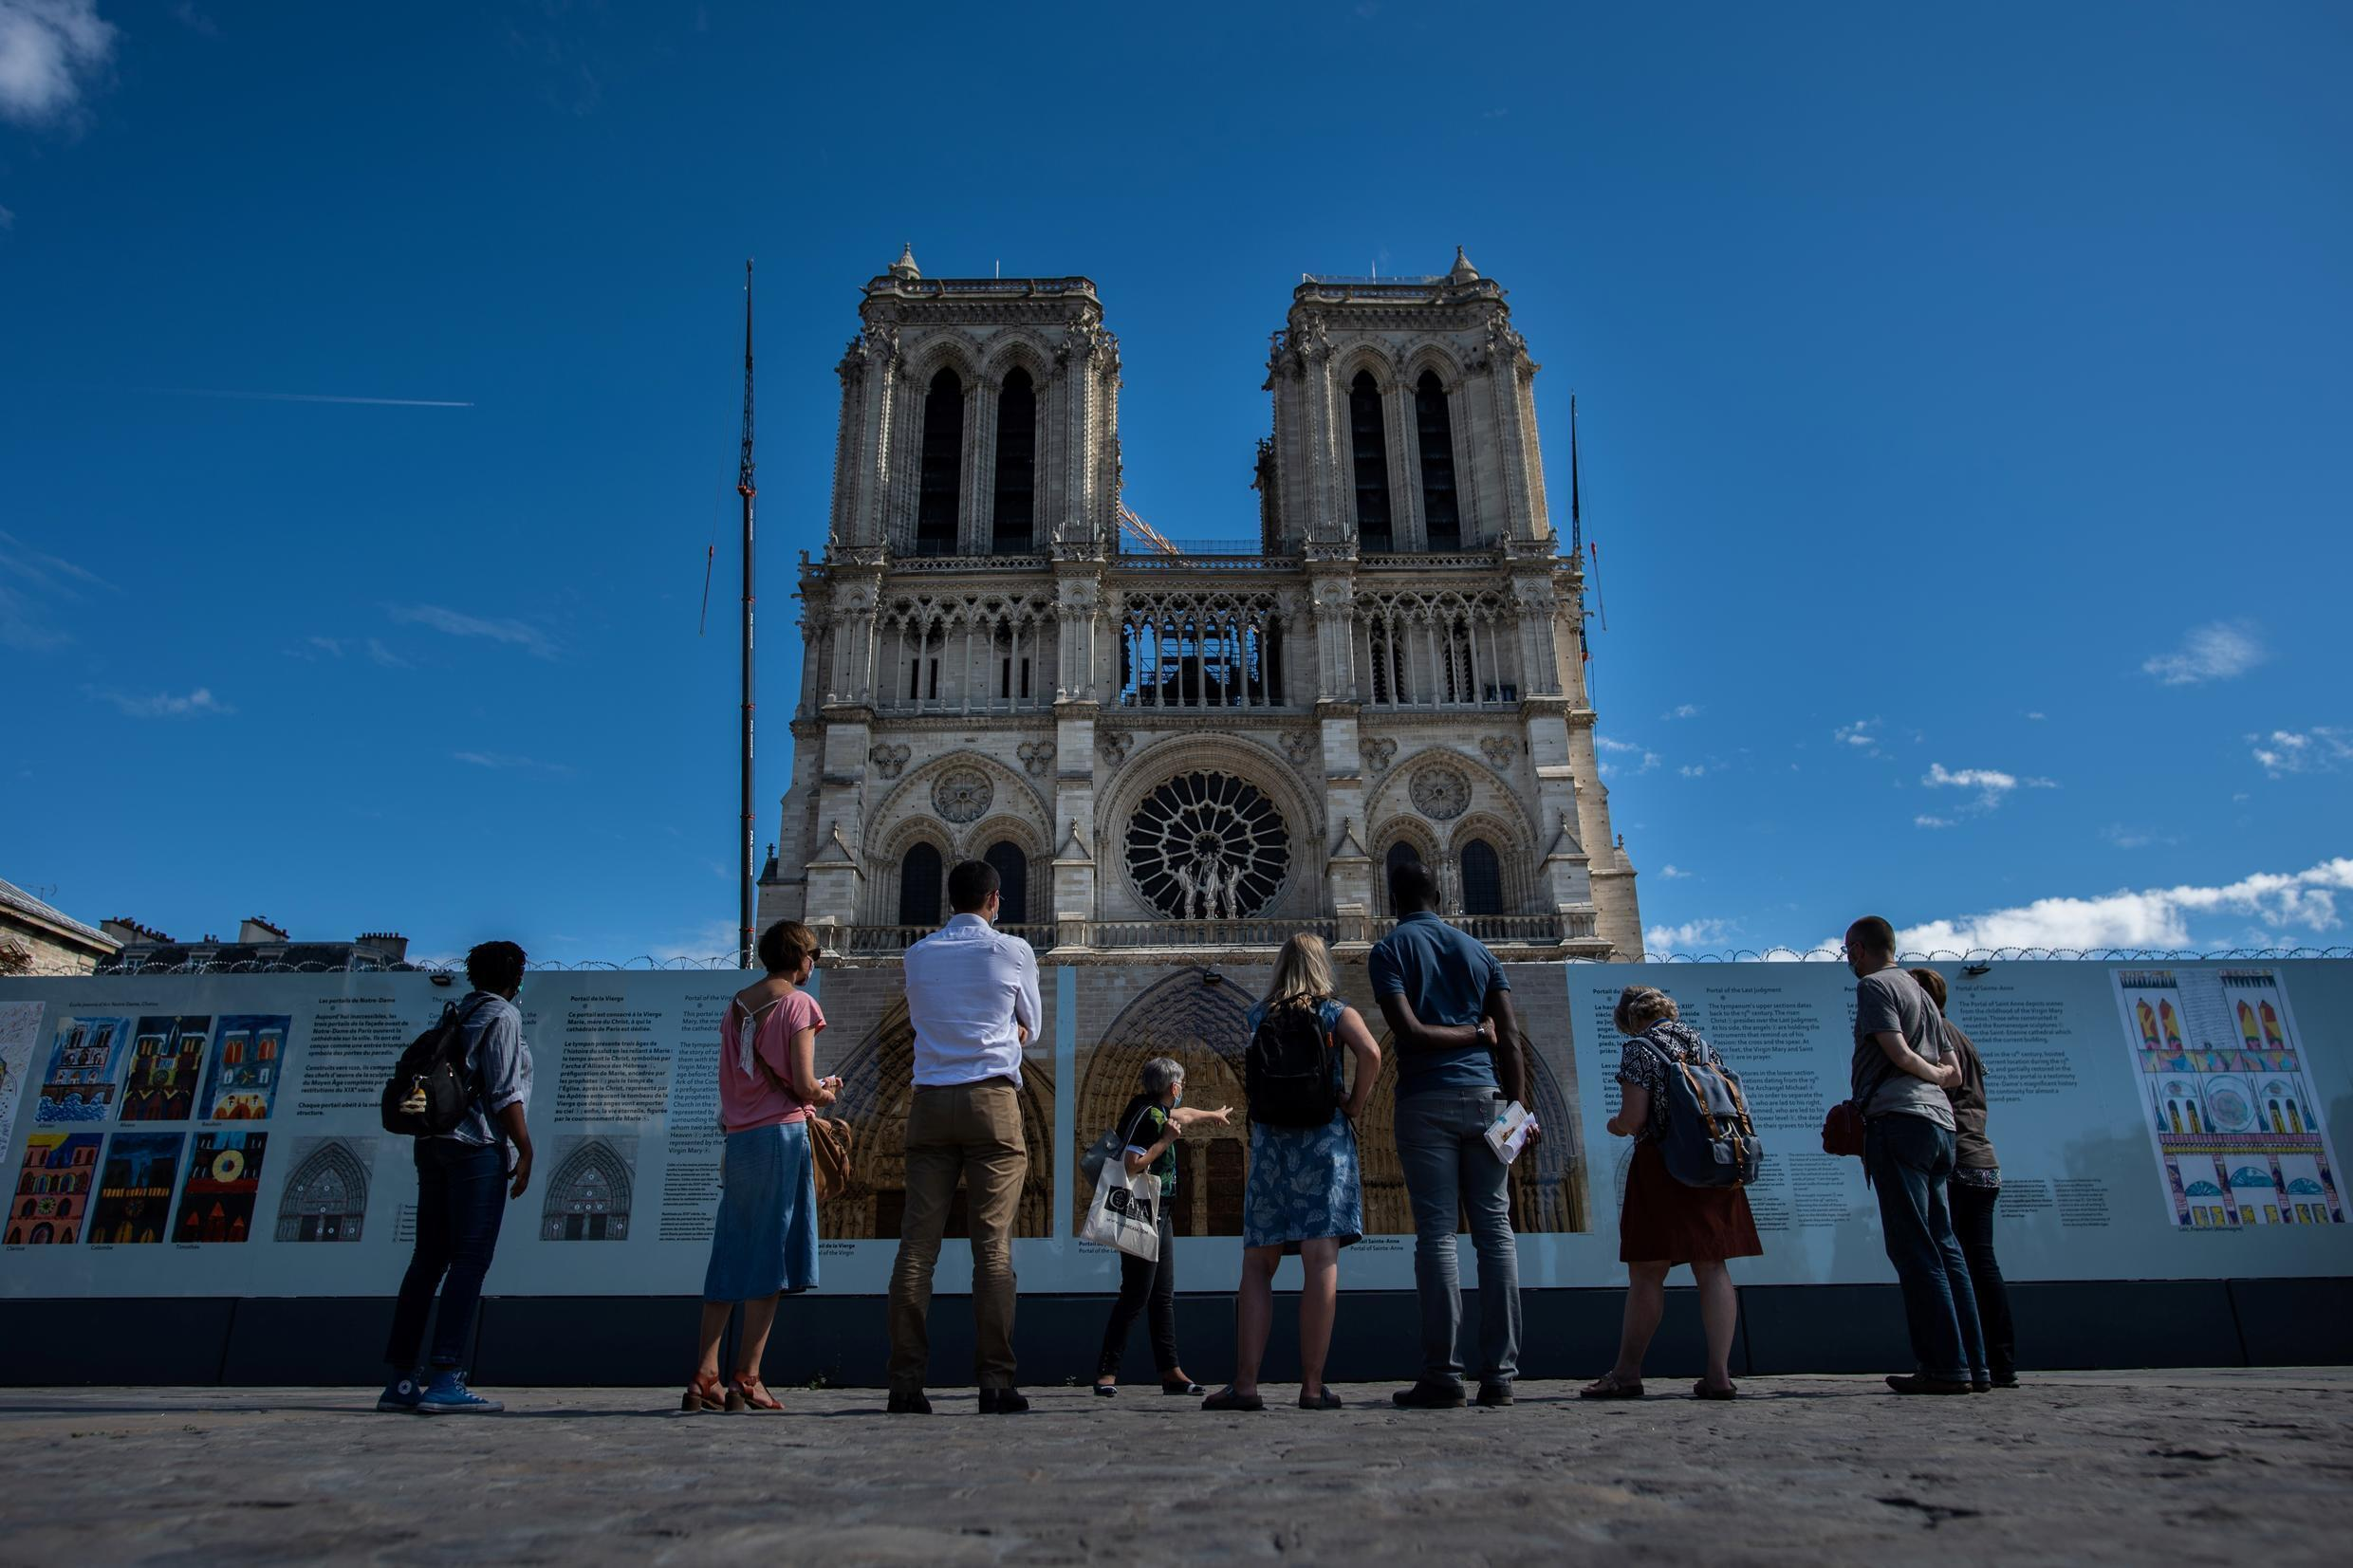 France is racing to have Notre-Dame rebuilt in time for the 2024 summer Olympics in Paris.